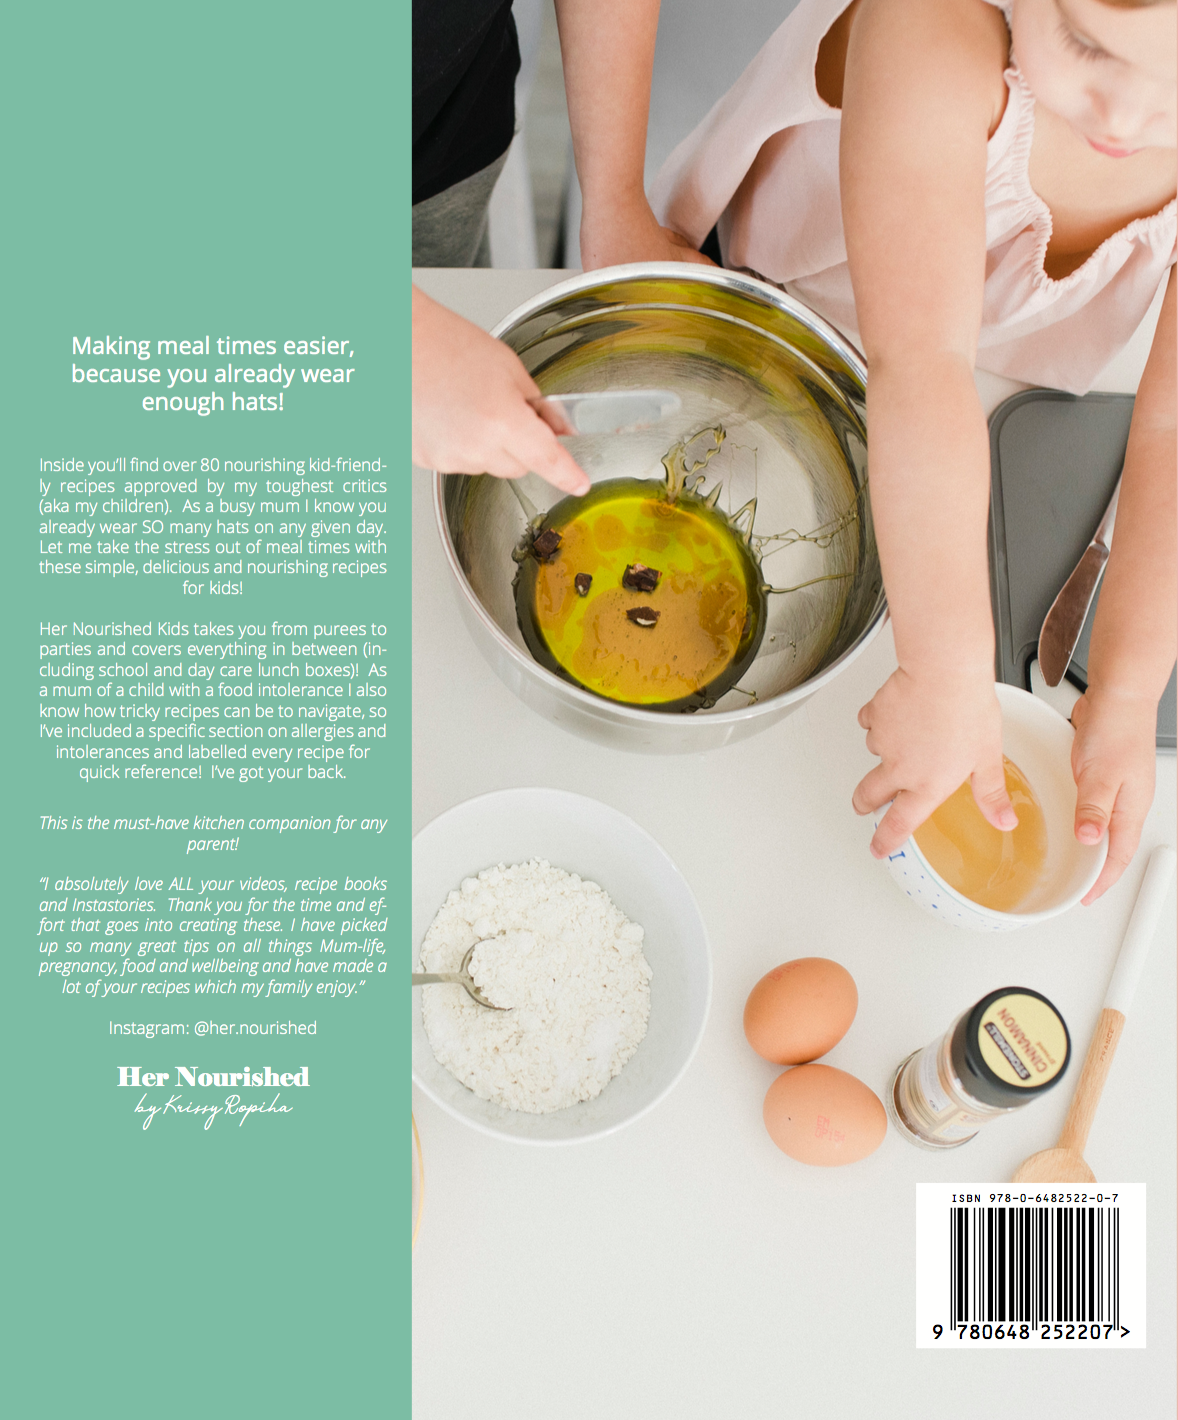 HER NOURISHED KIDS - PRINTED RECIPE BOOK – Nourished With Krissy